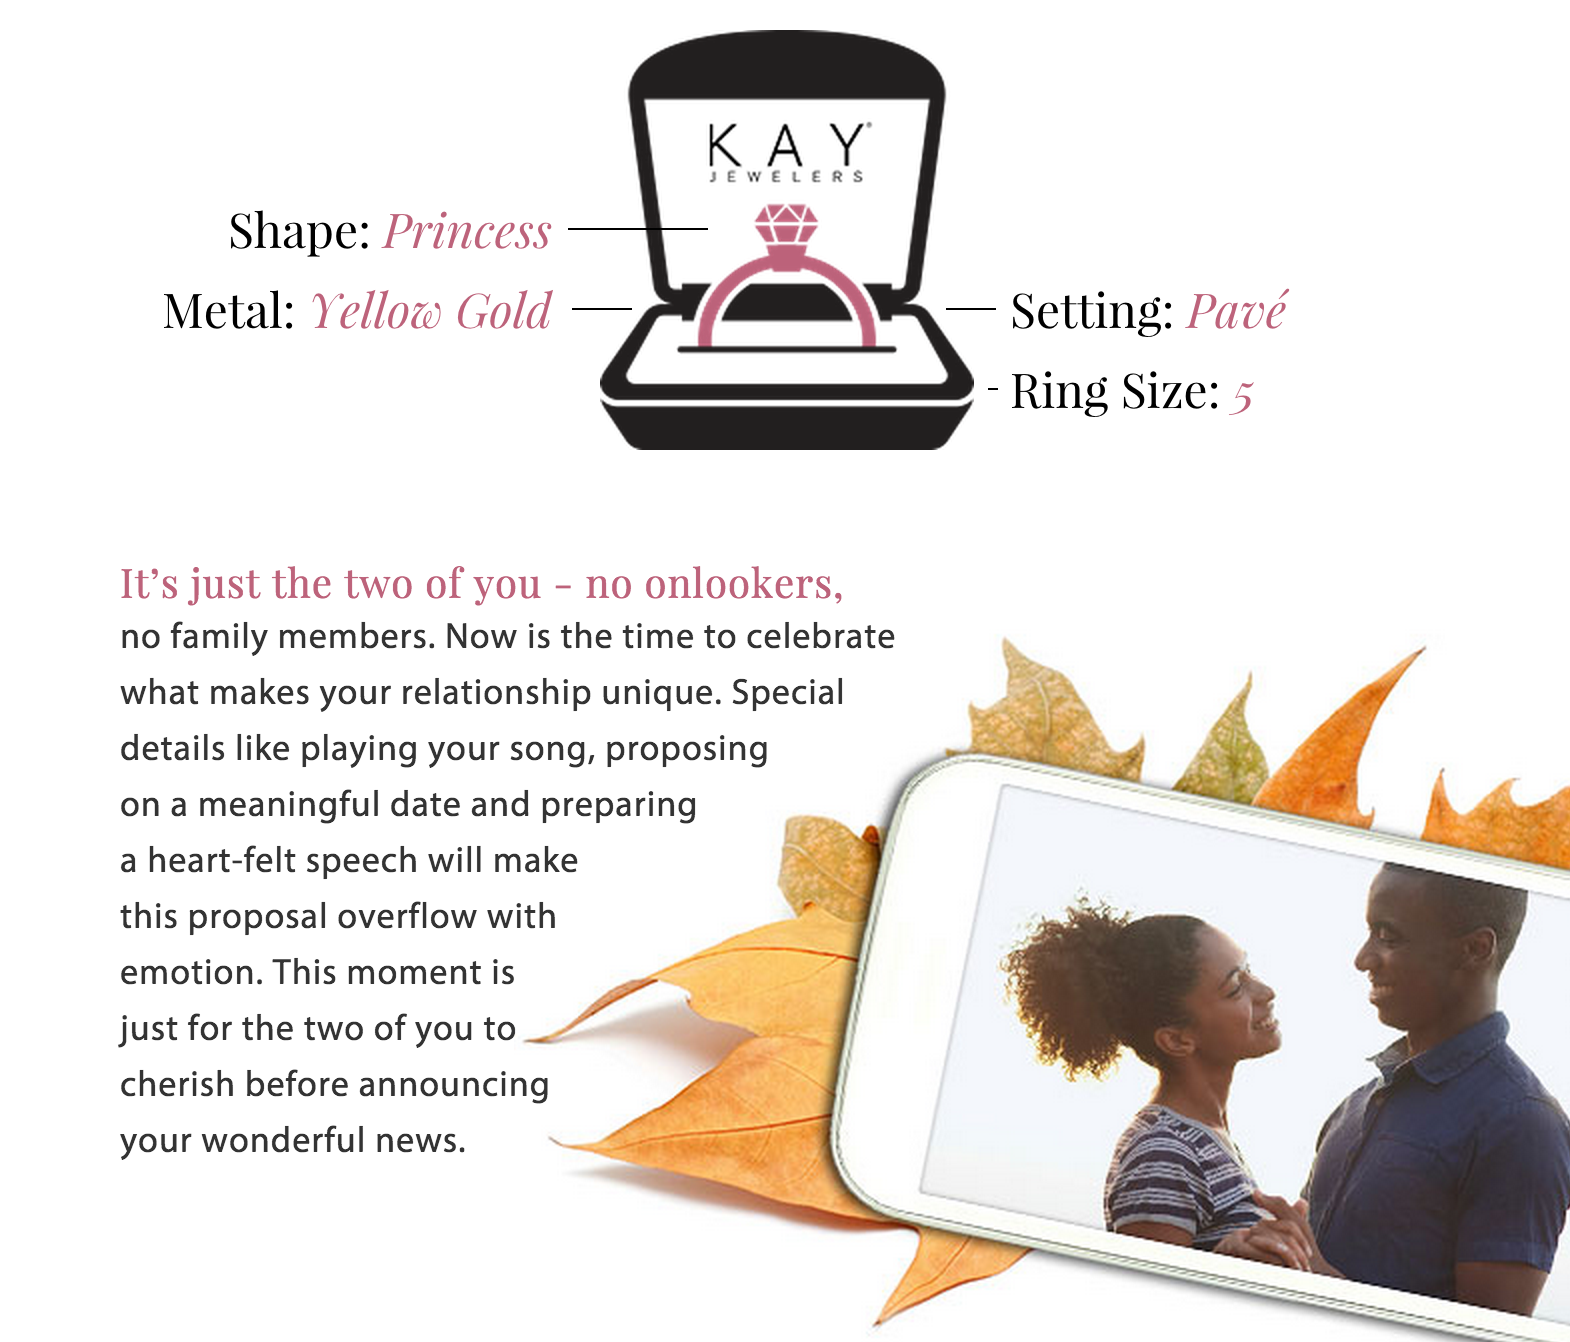 The Perfect Proposal - Kay Jewelers